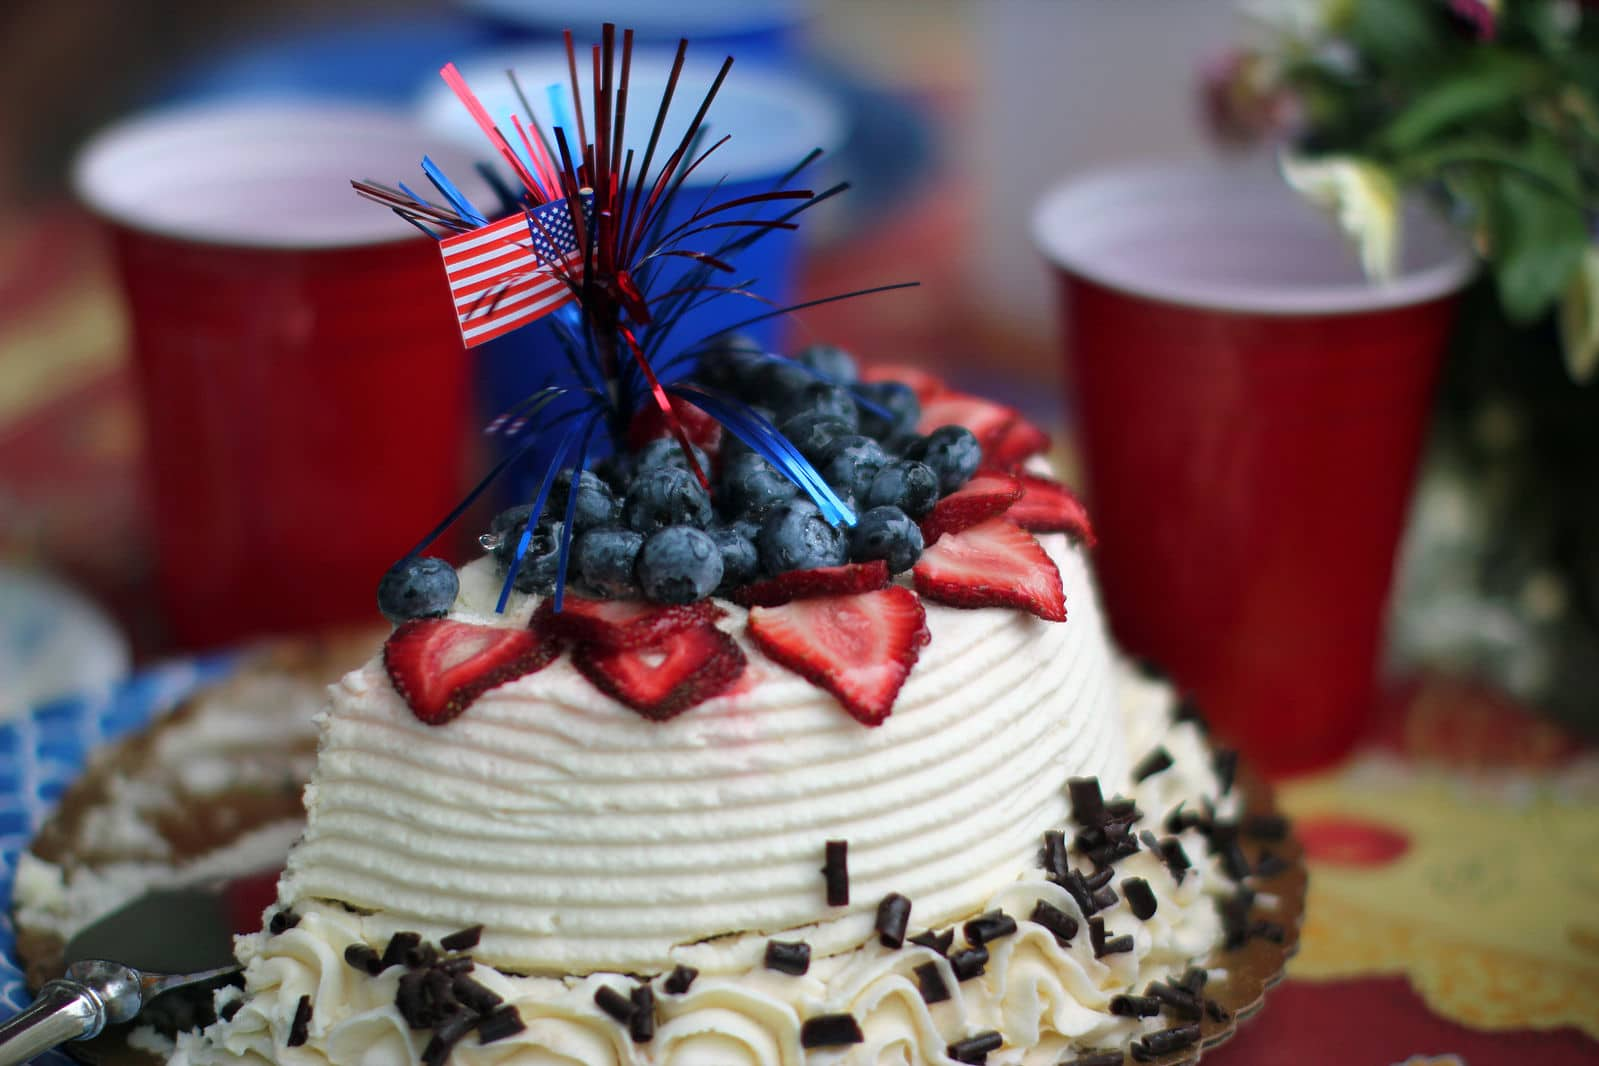 Closings, other scheduling for holiday announced - Most public offices will be closed tomorrow for the Fourth of July holiday.